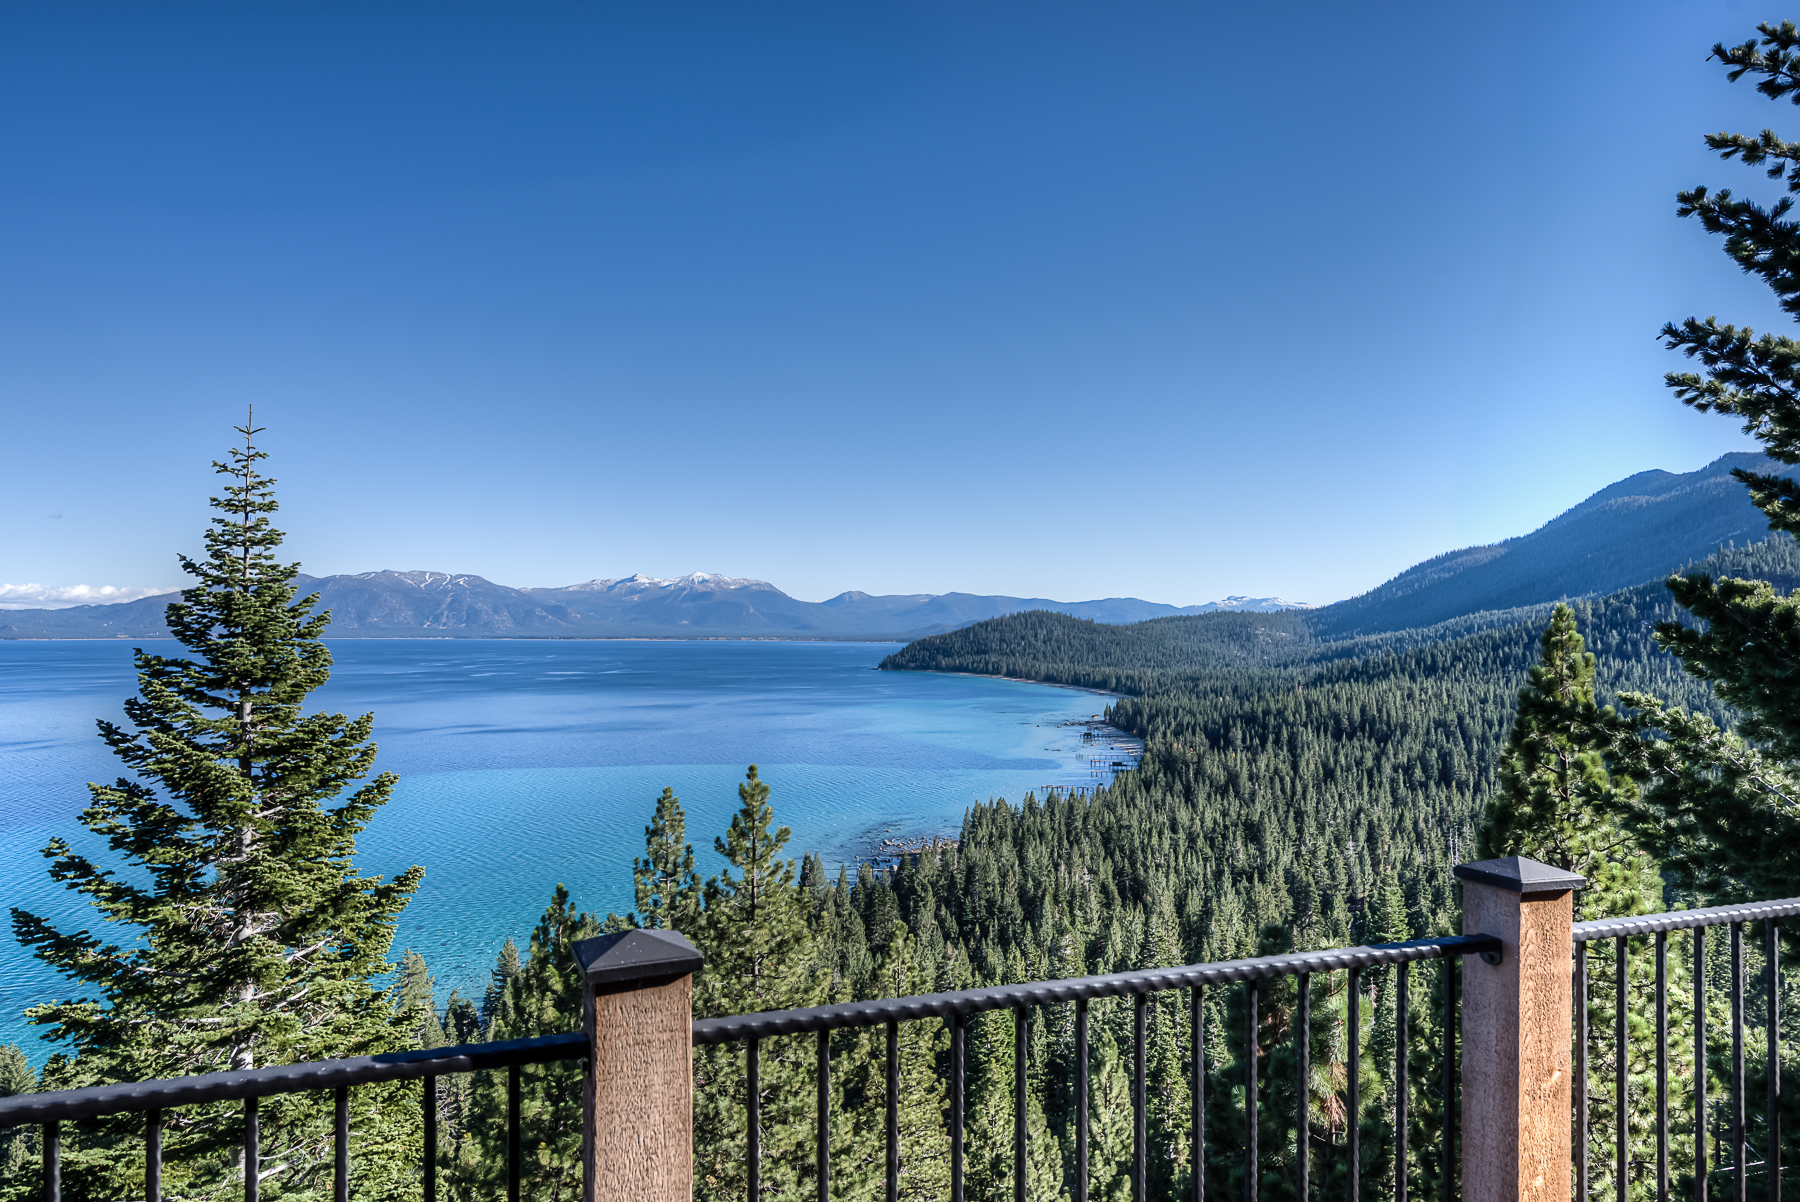 in out for rent rentals tahoe lake vacation rental cabins townhome ski trailside